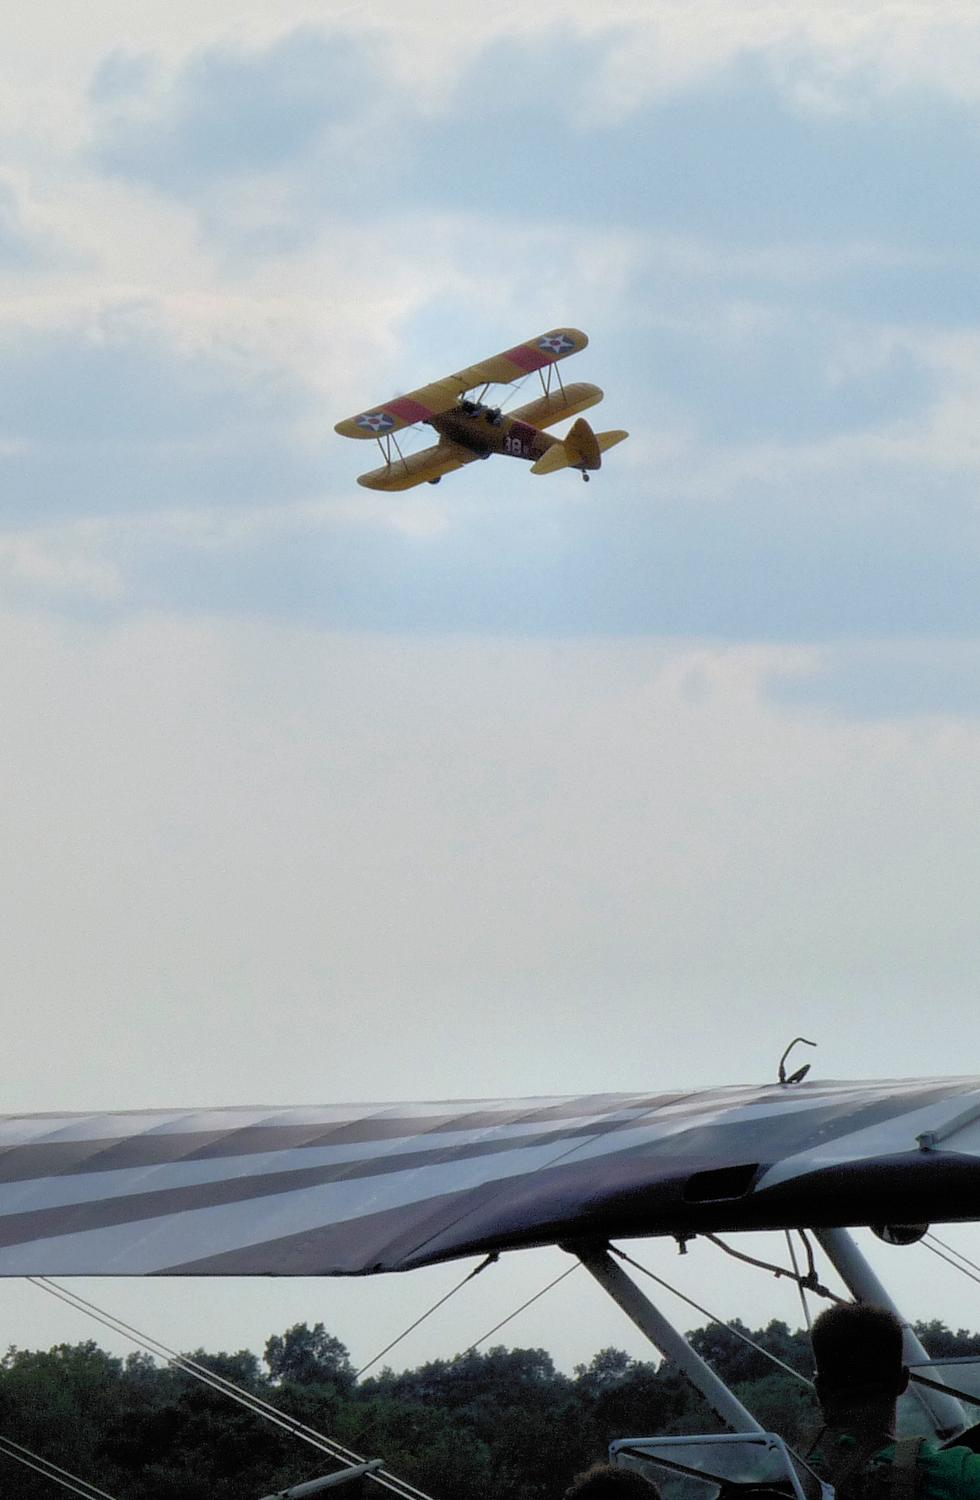 vintage biplane - Takeoff - Panasonic DMC-FZ28 -- At the Flying Circus - Bealton Virginia - Tony Karp, design, art, photography, techno-impressionist, techno-impressionism, aerial photography , drone , drones , dji , mavic pro , video , 3D printing - Books -